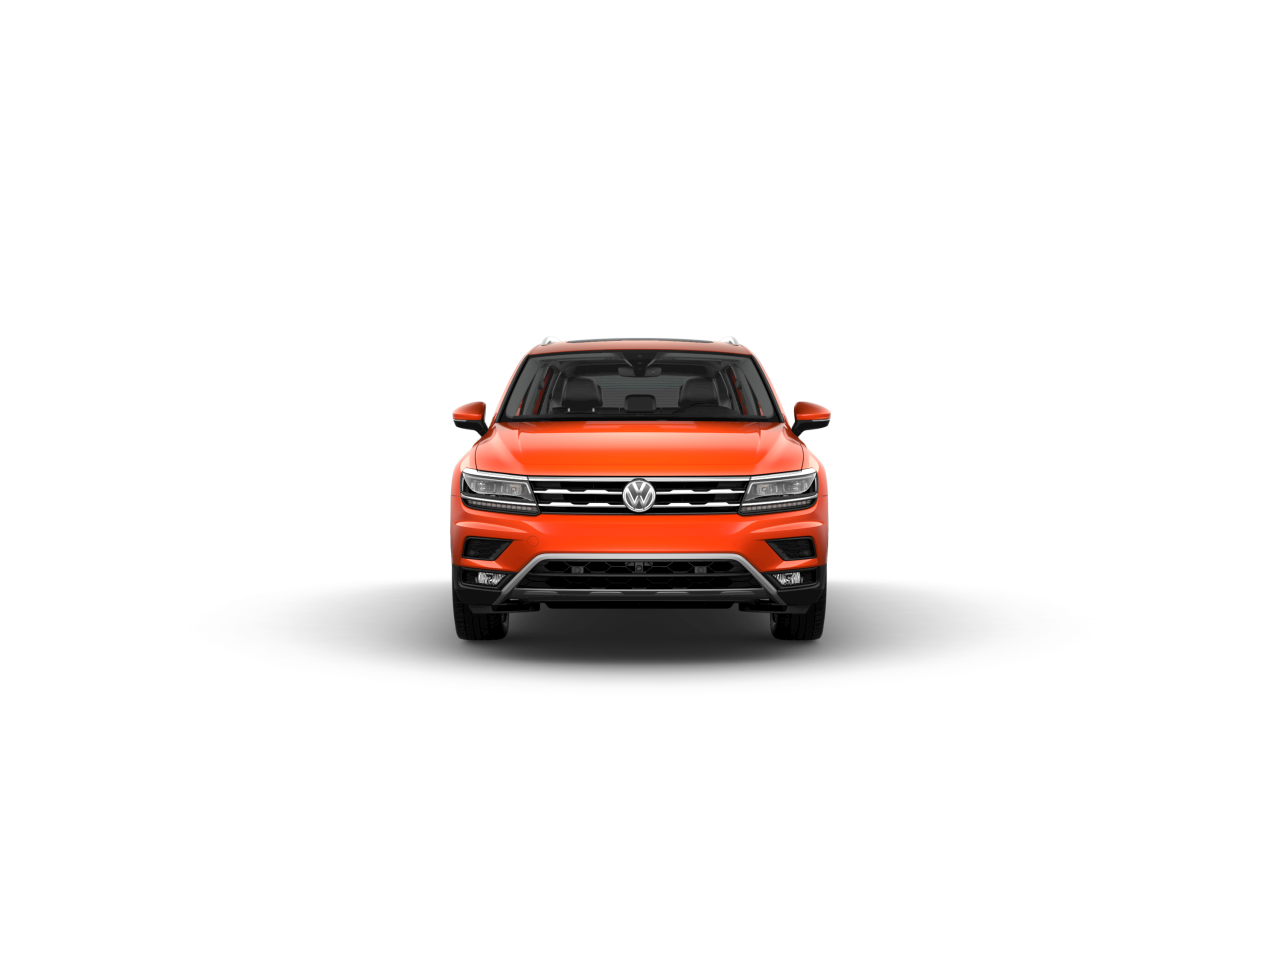 2019 Habanero Orange Metallic (+$295)